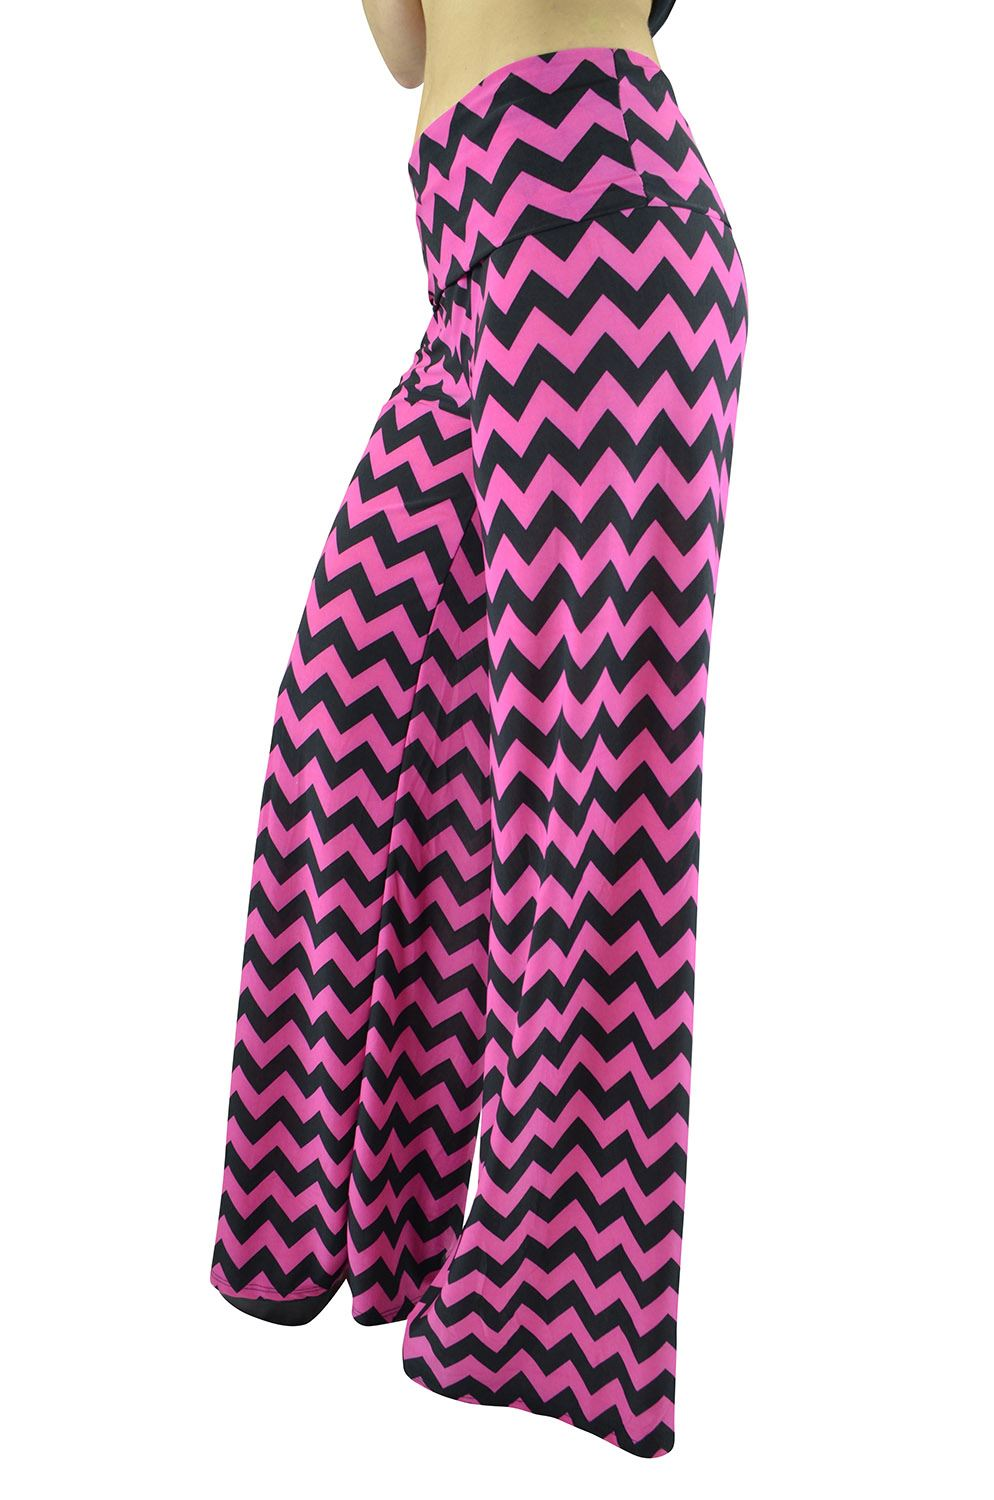 Belle Donne Women Palazzo Pants Chevron Aztec Tribal HighWaist Pants - Pink/Medium